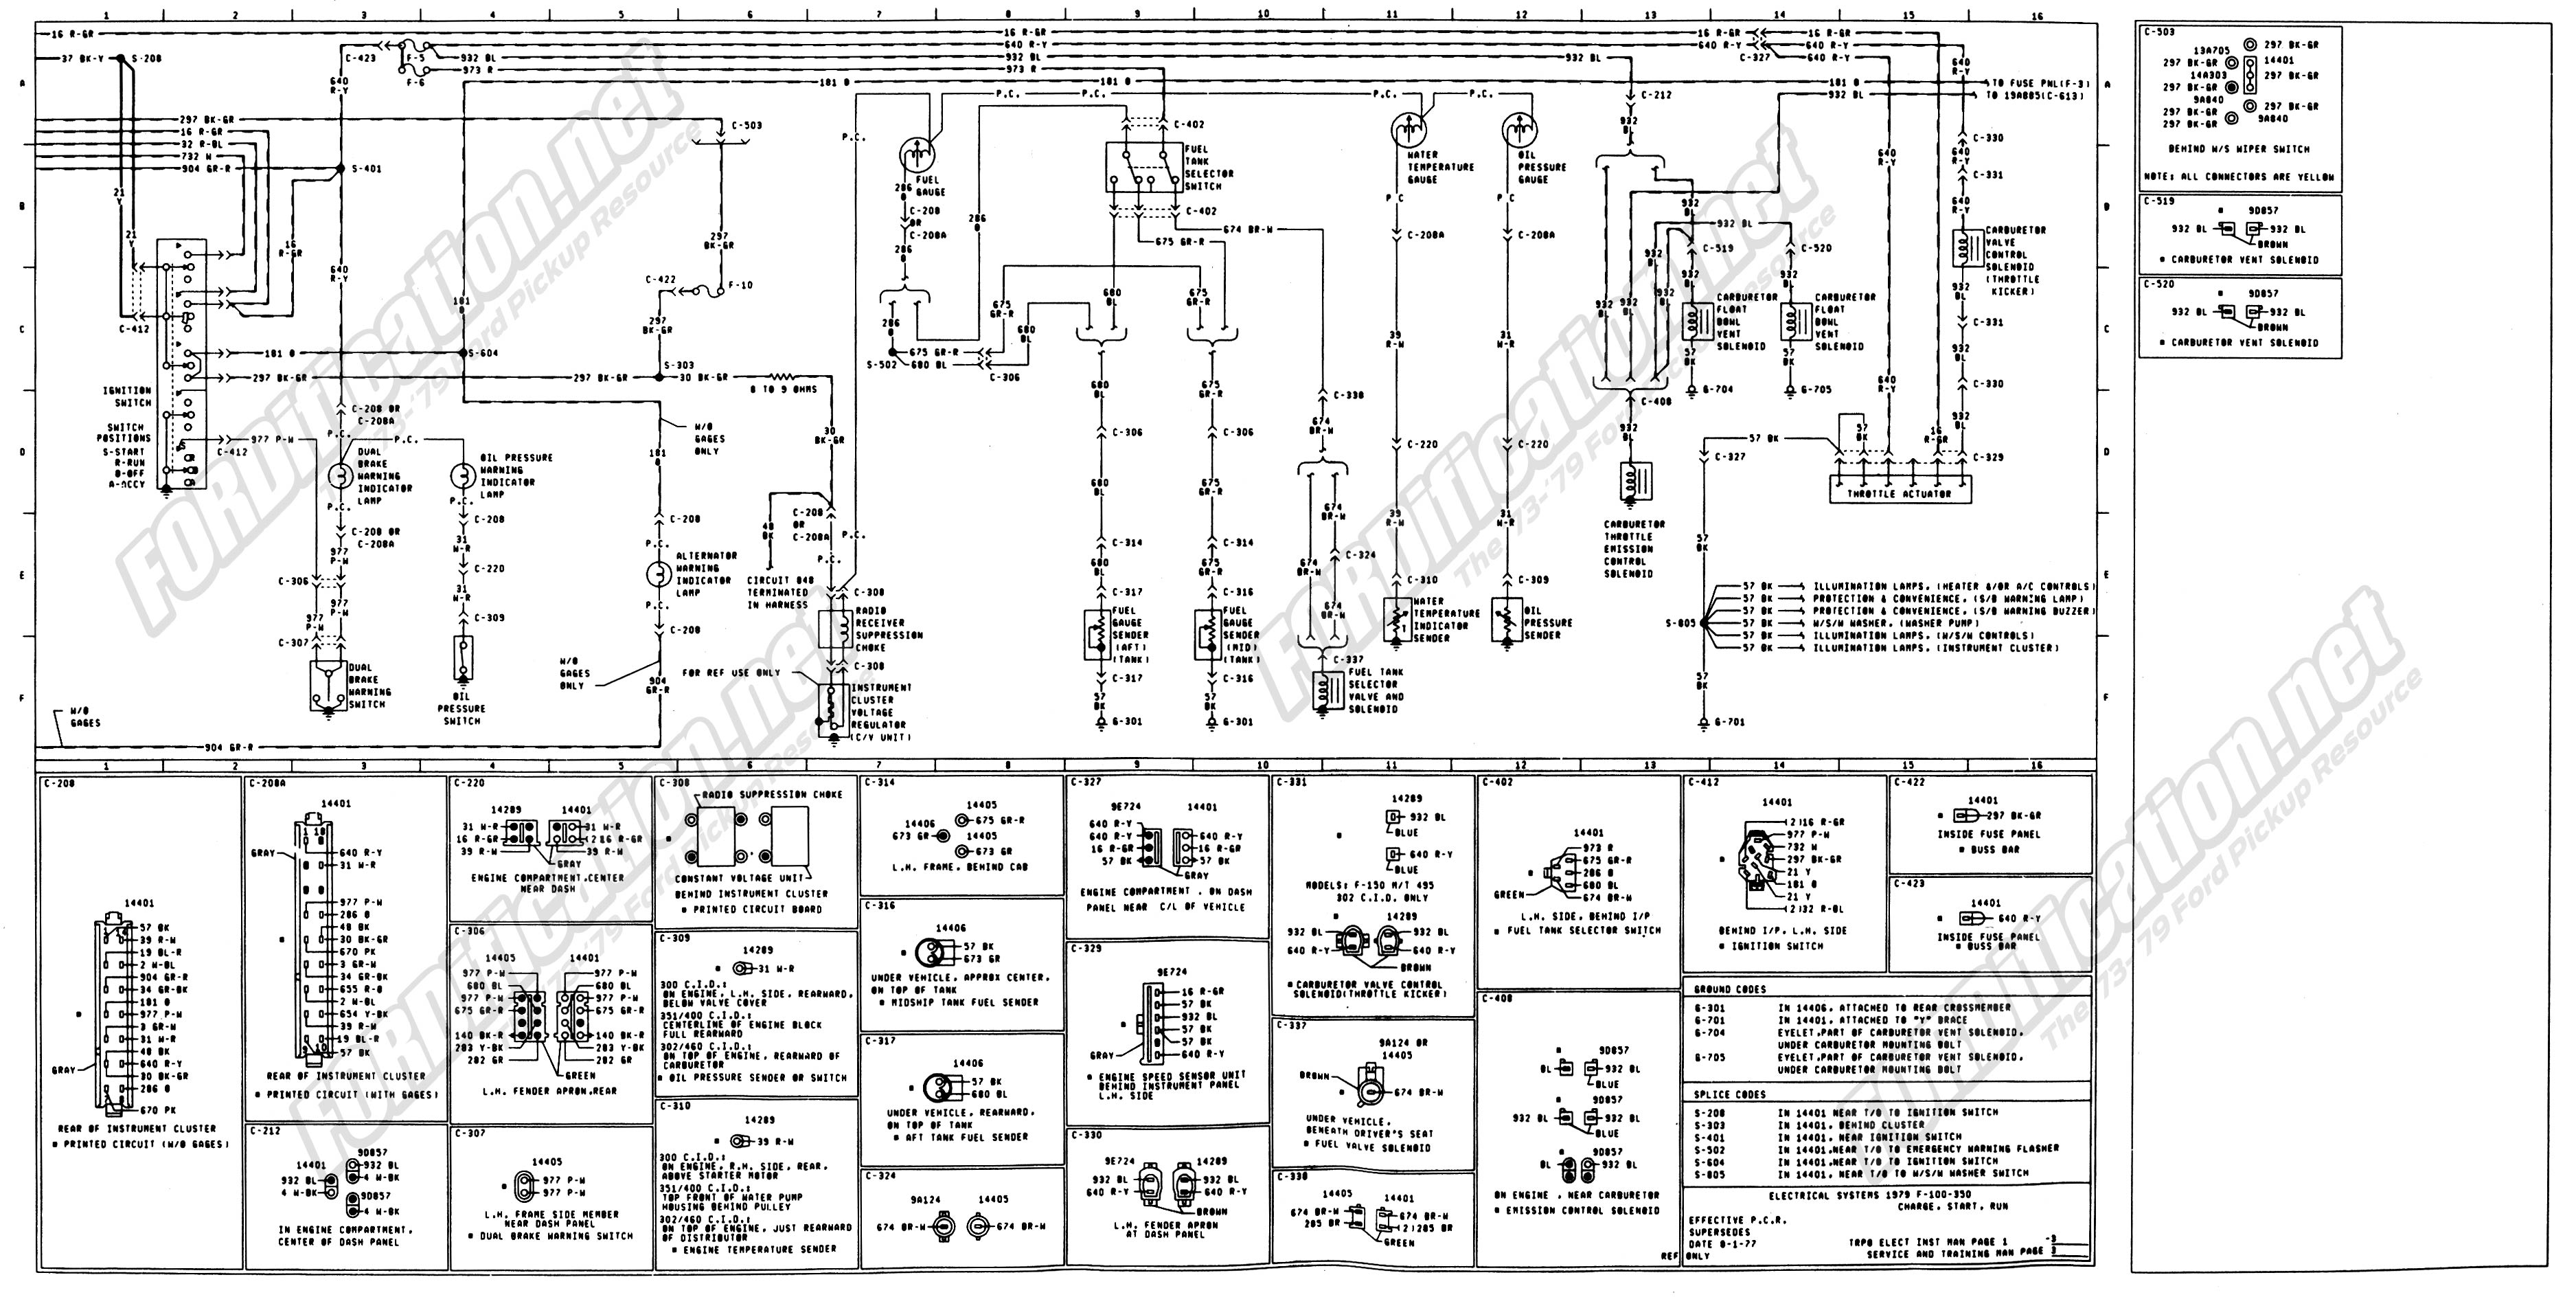 Wiring Diagram Schamatic Help Ford Truck Enthusiasts Forums Am Taking Electricity From My Home To Garage Solved Fixya Http Fordificationnet Tech Imagesaster 3of9